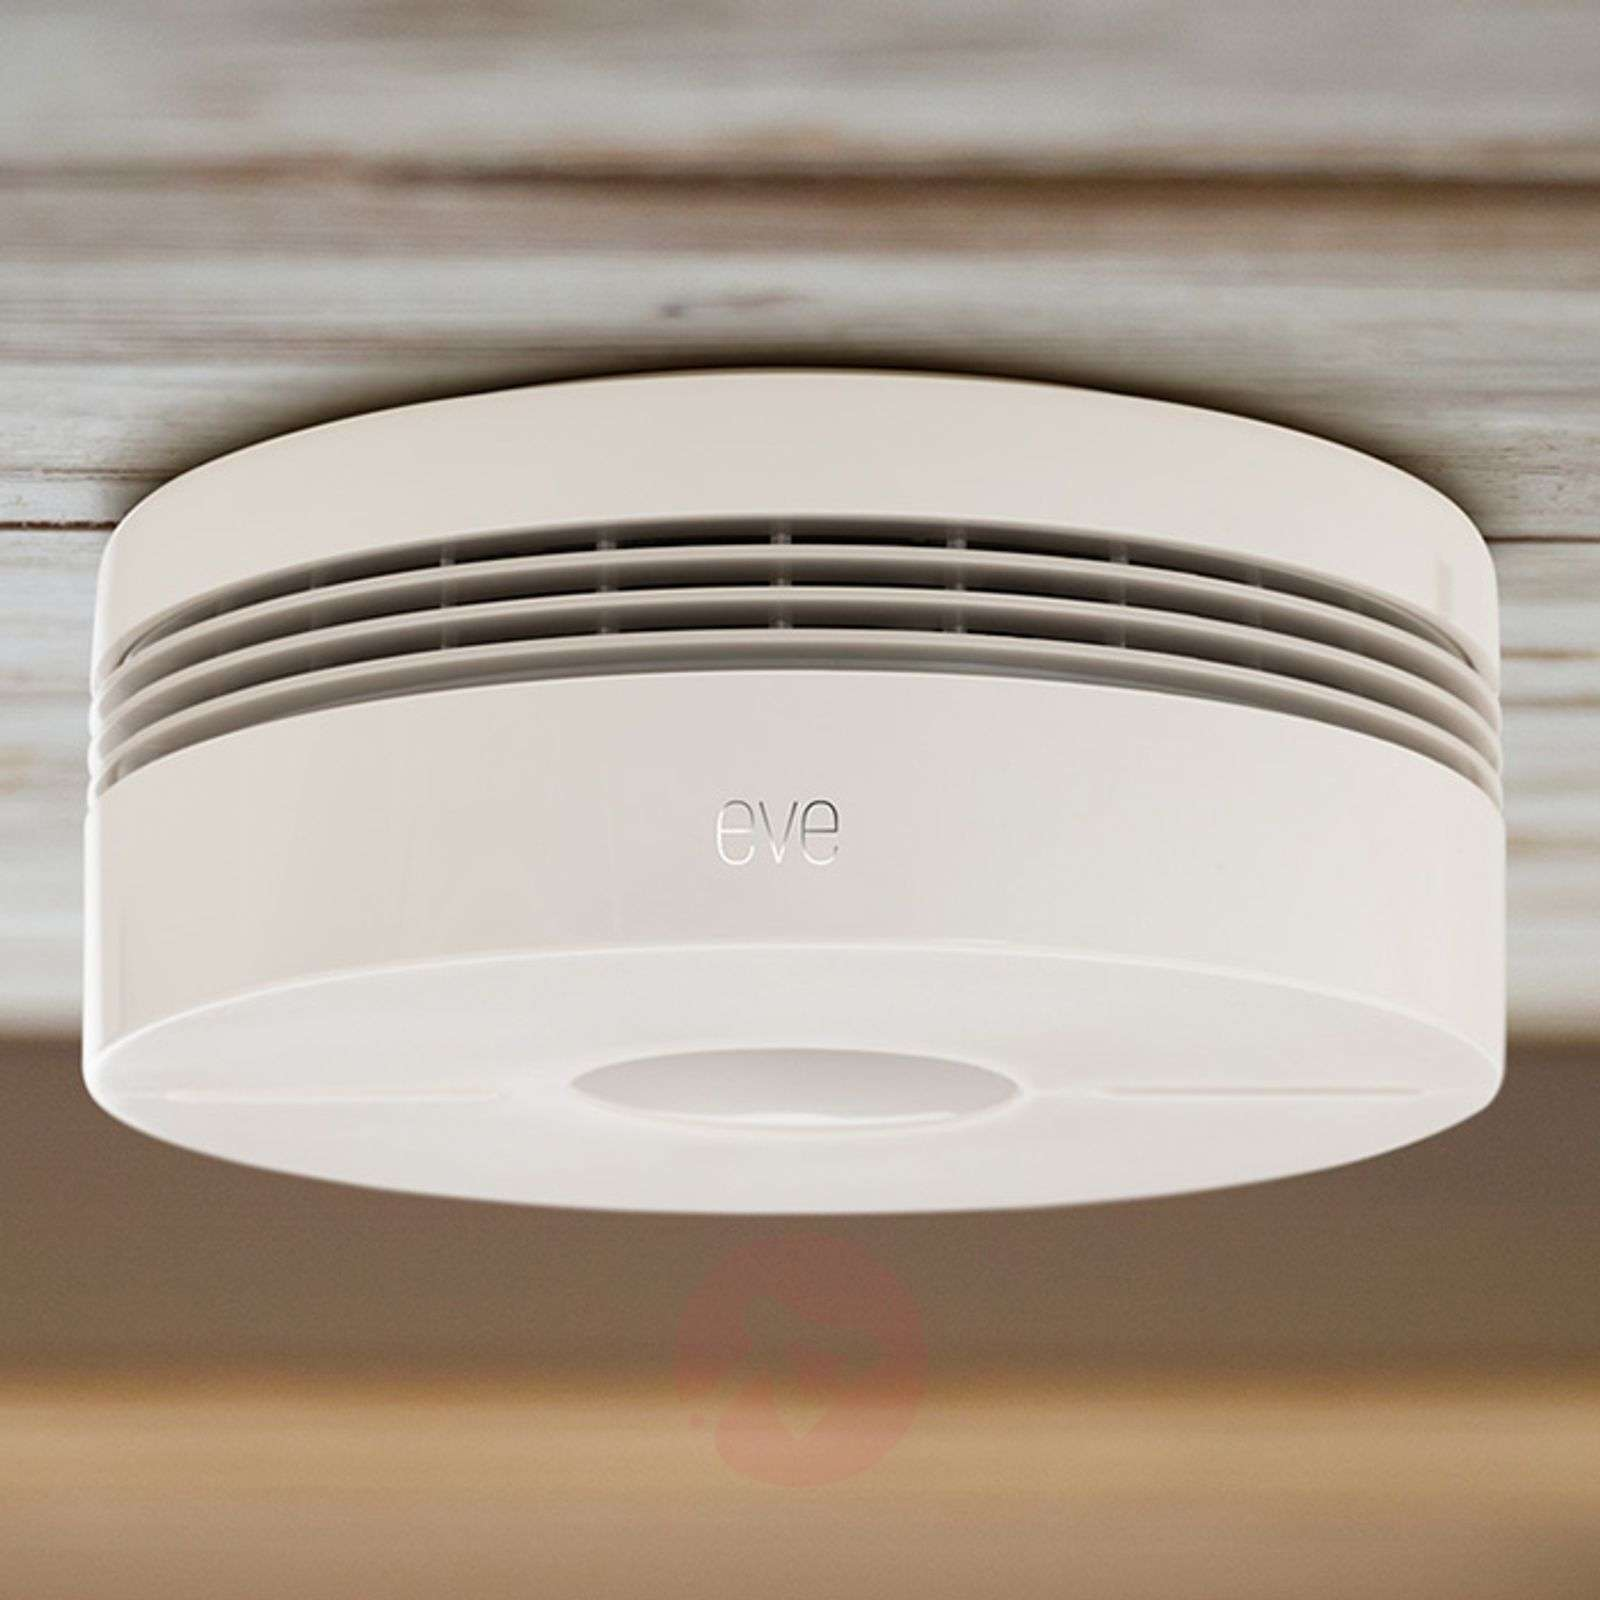 Eve Smoke Smart Home detector de humo-2029007-01